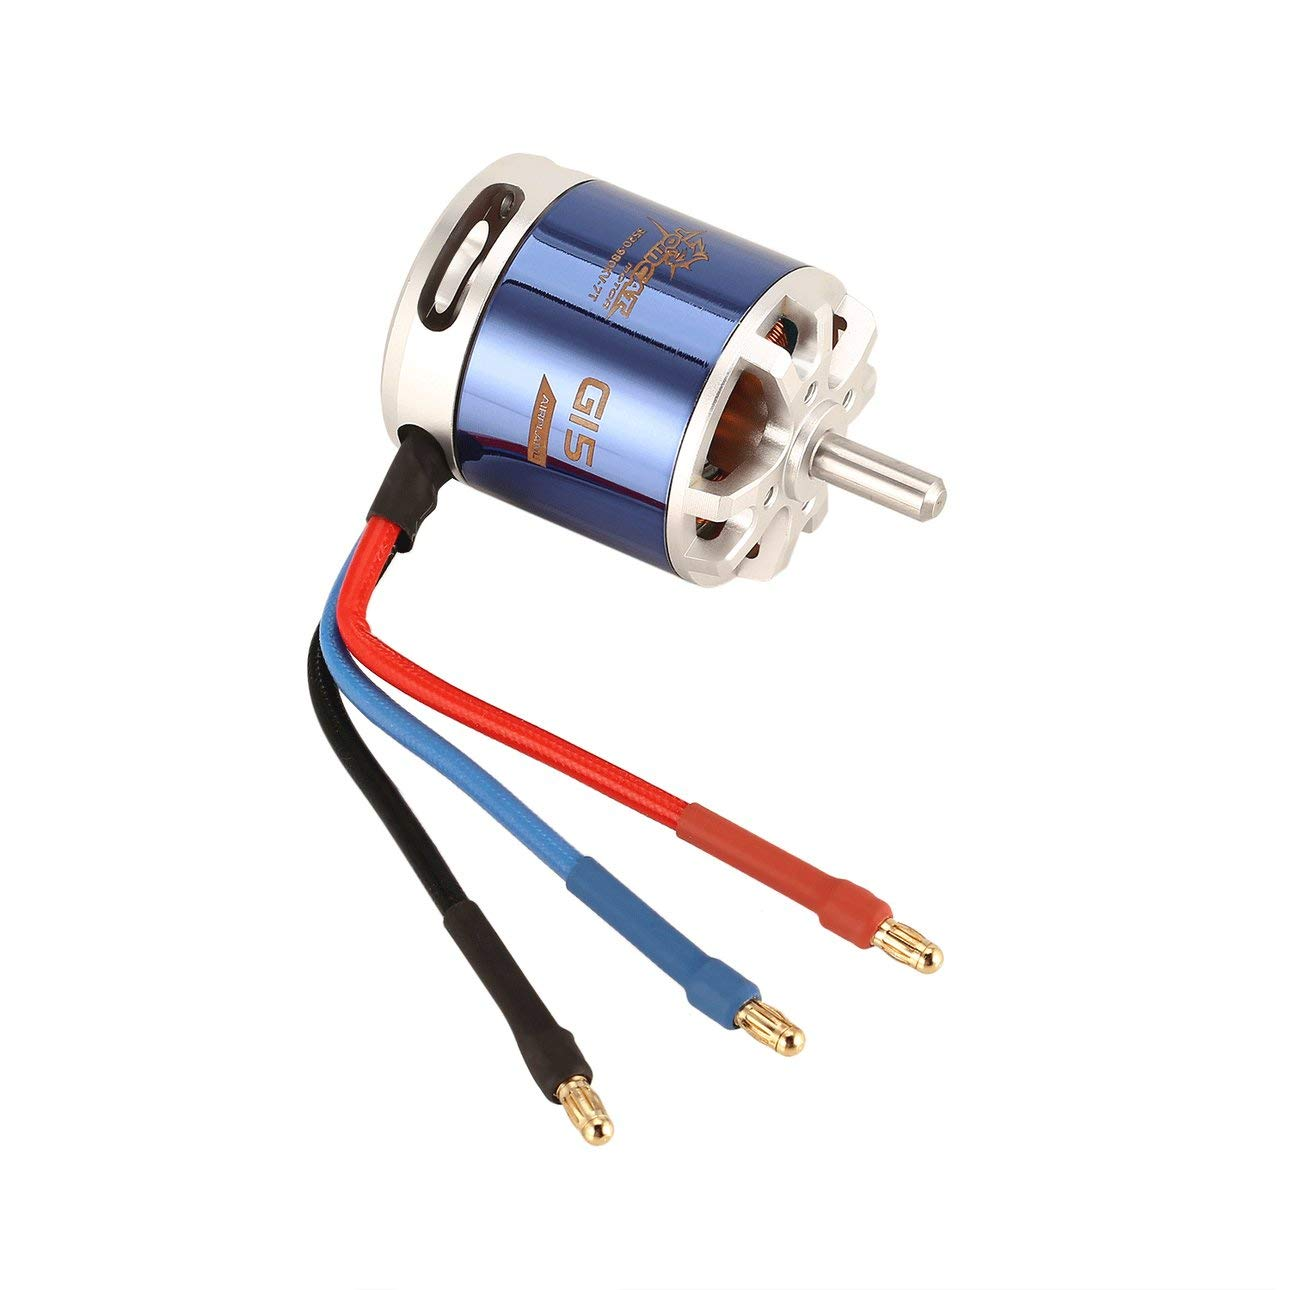 Ballylelly Accessori RC Drone Tomcat TC-G 3520 KV980 7T Brushless Motor Skyload 50A Brushless ESC Combo Set per RC Fixed Wing Airplane Drone Elicottero